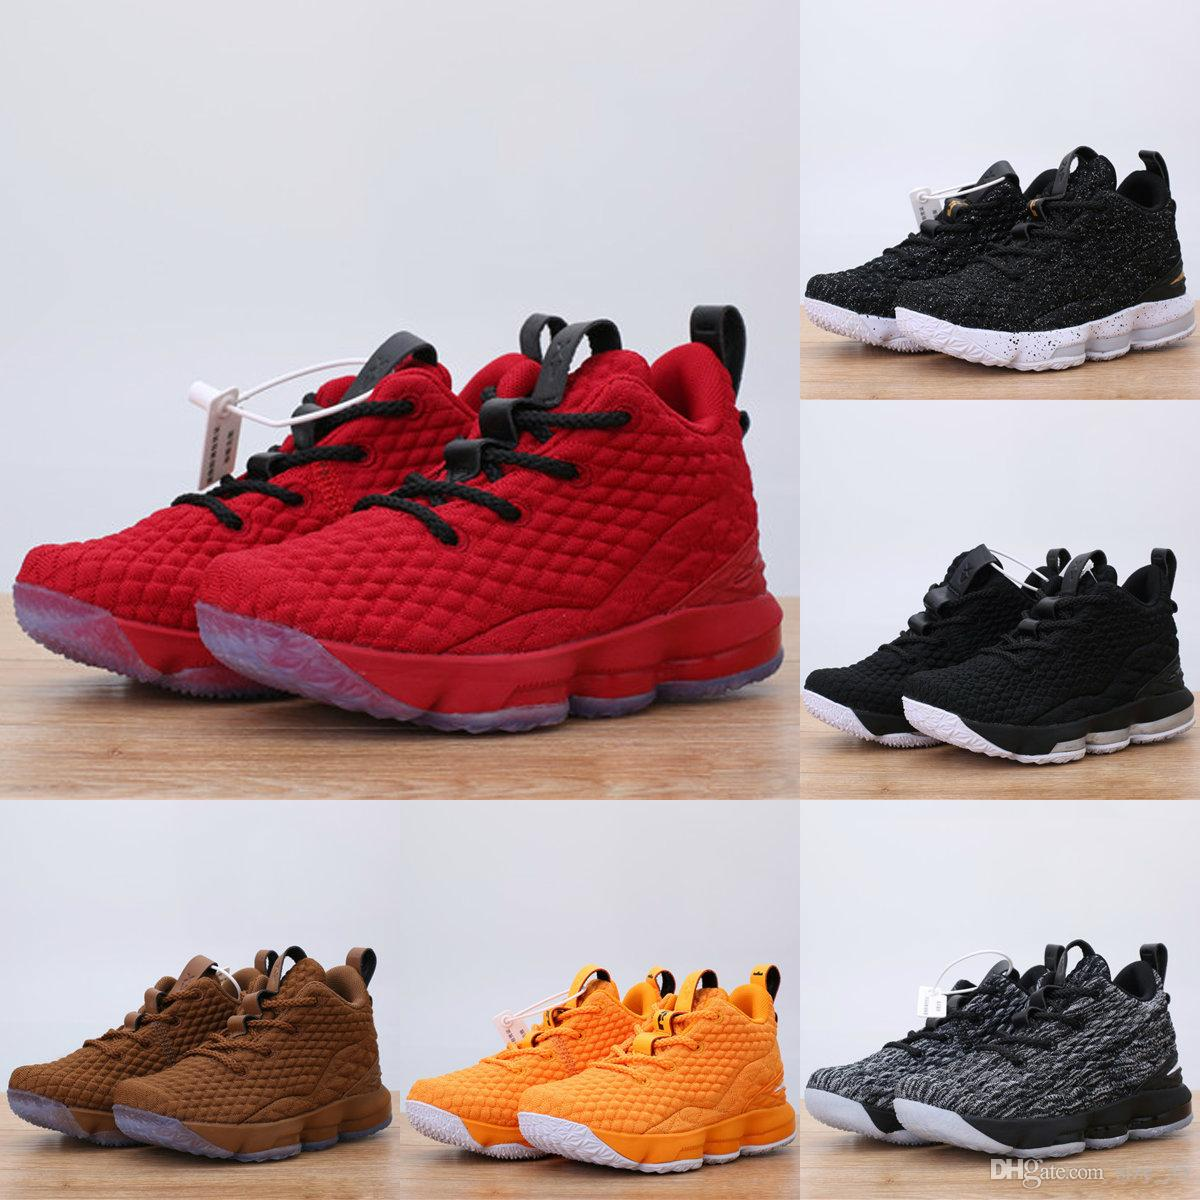 7cc567441a8 ... greece chaussures pour enfonts lebron 15 kids basketball shoes sneakers  youth boys shoes lebron 15 black